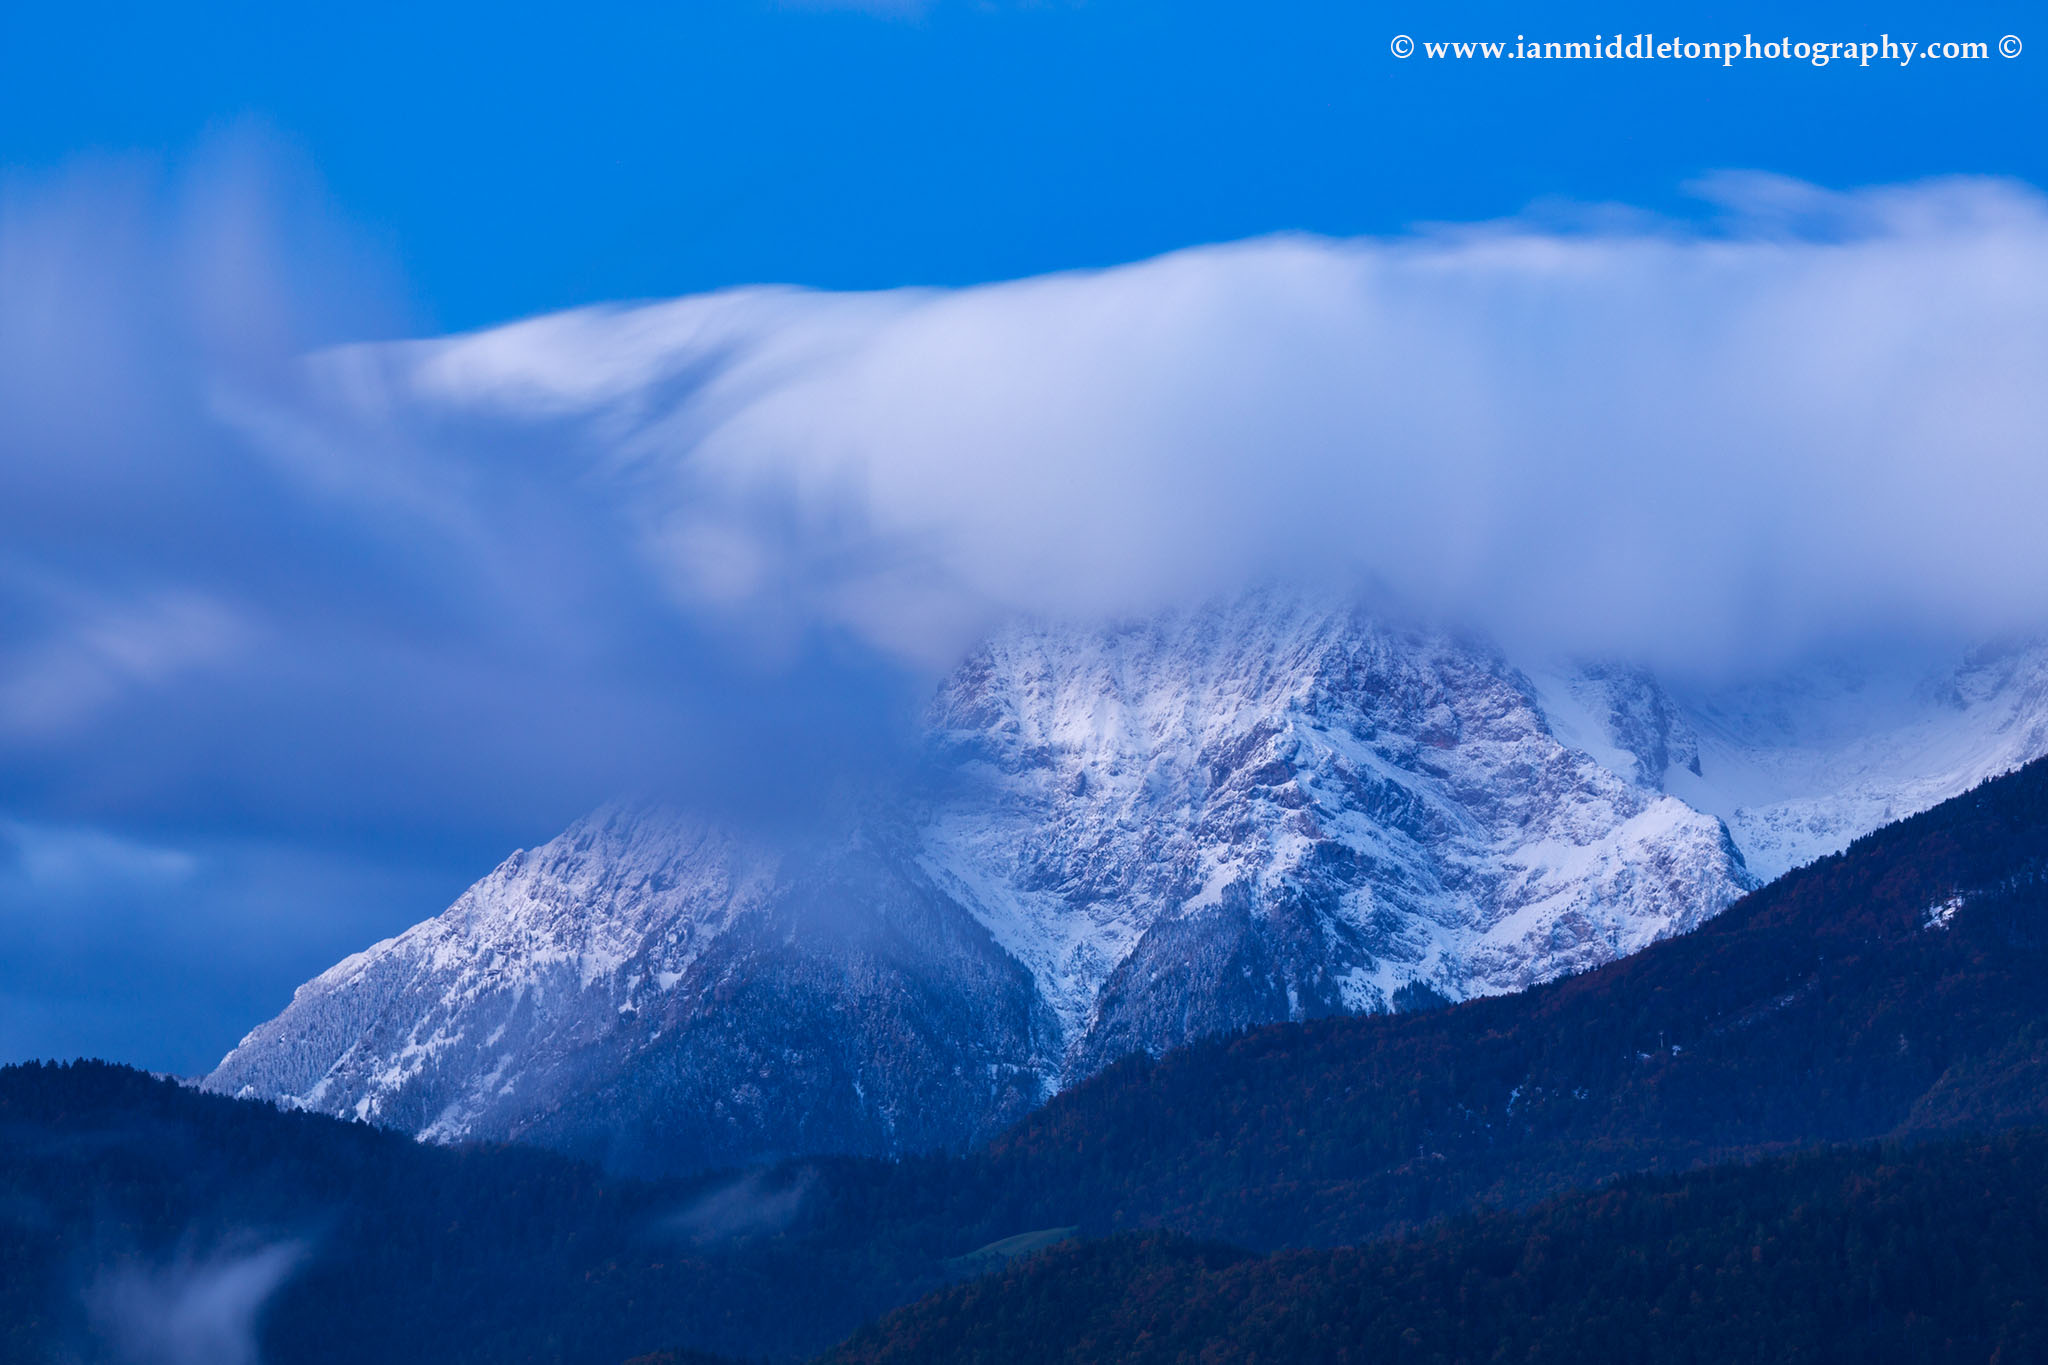 Interesting cloud formation over the Kamnik Alps, Slovenia.